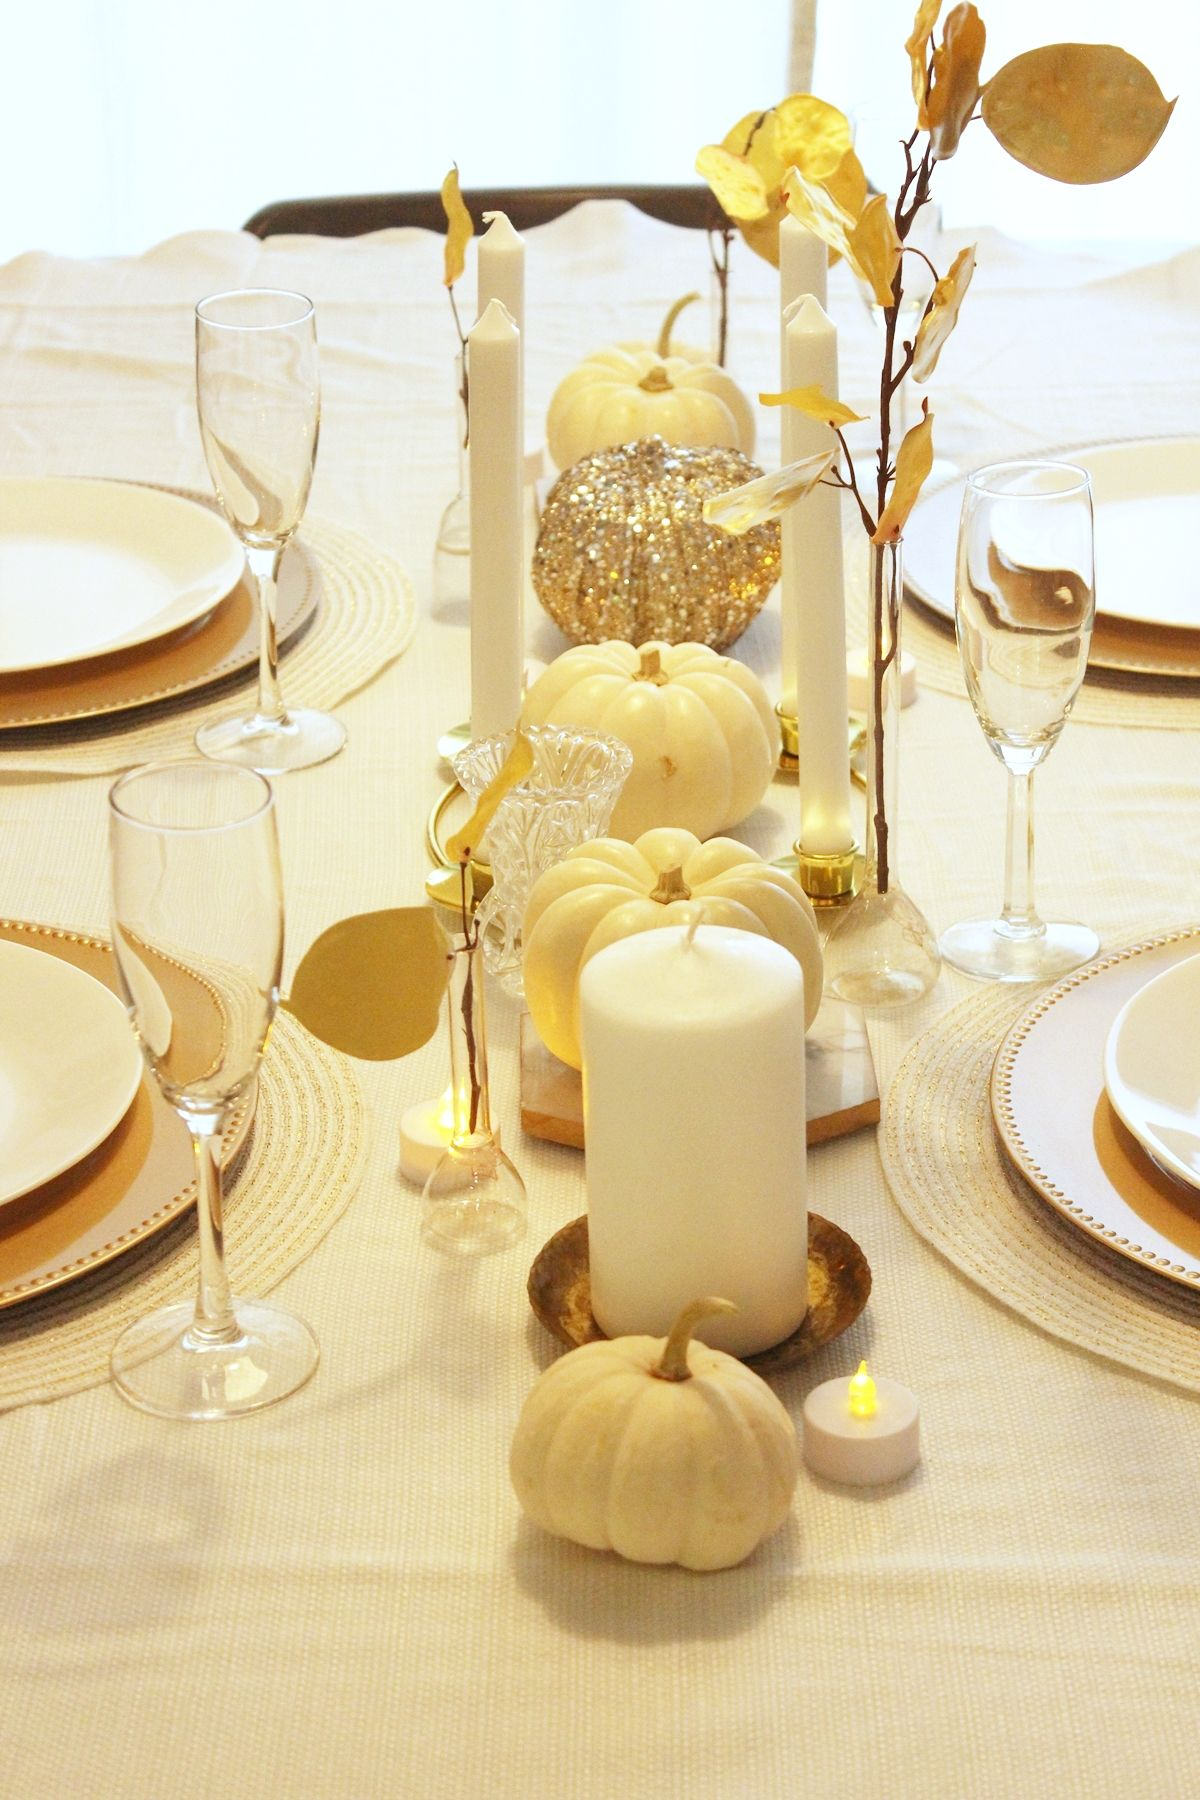 White Pumpkin Centerpieces-While the centerpiece can set the stage